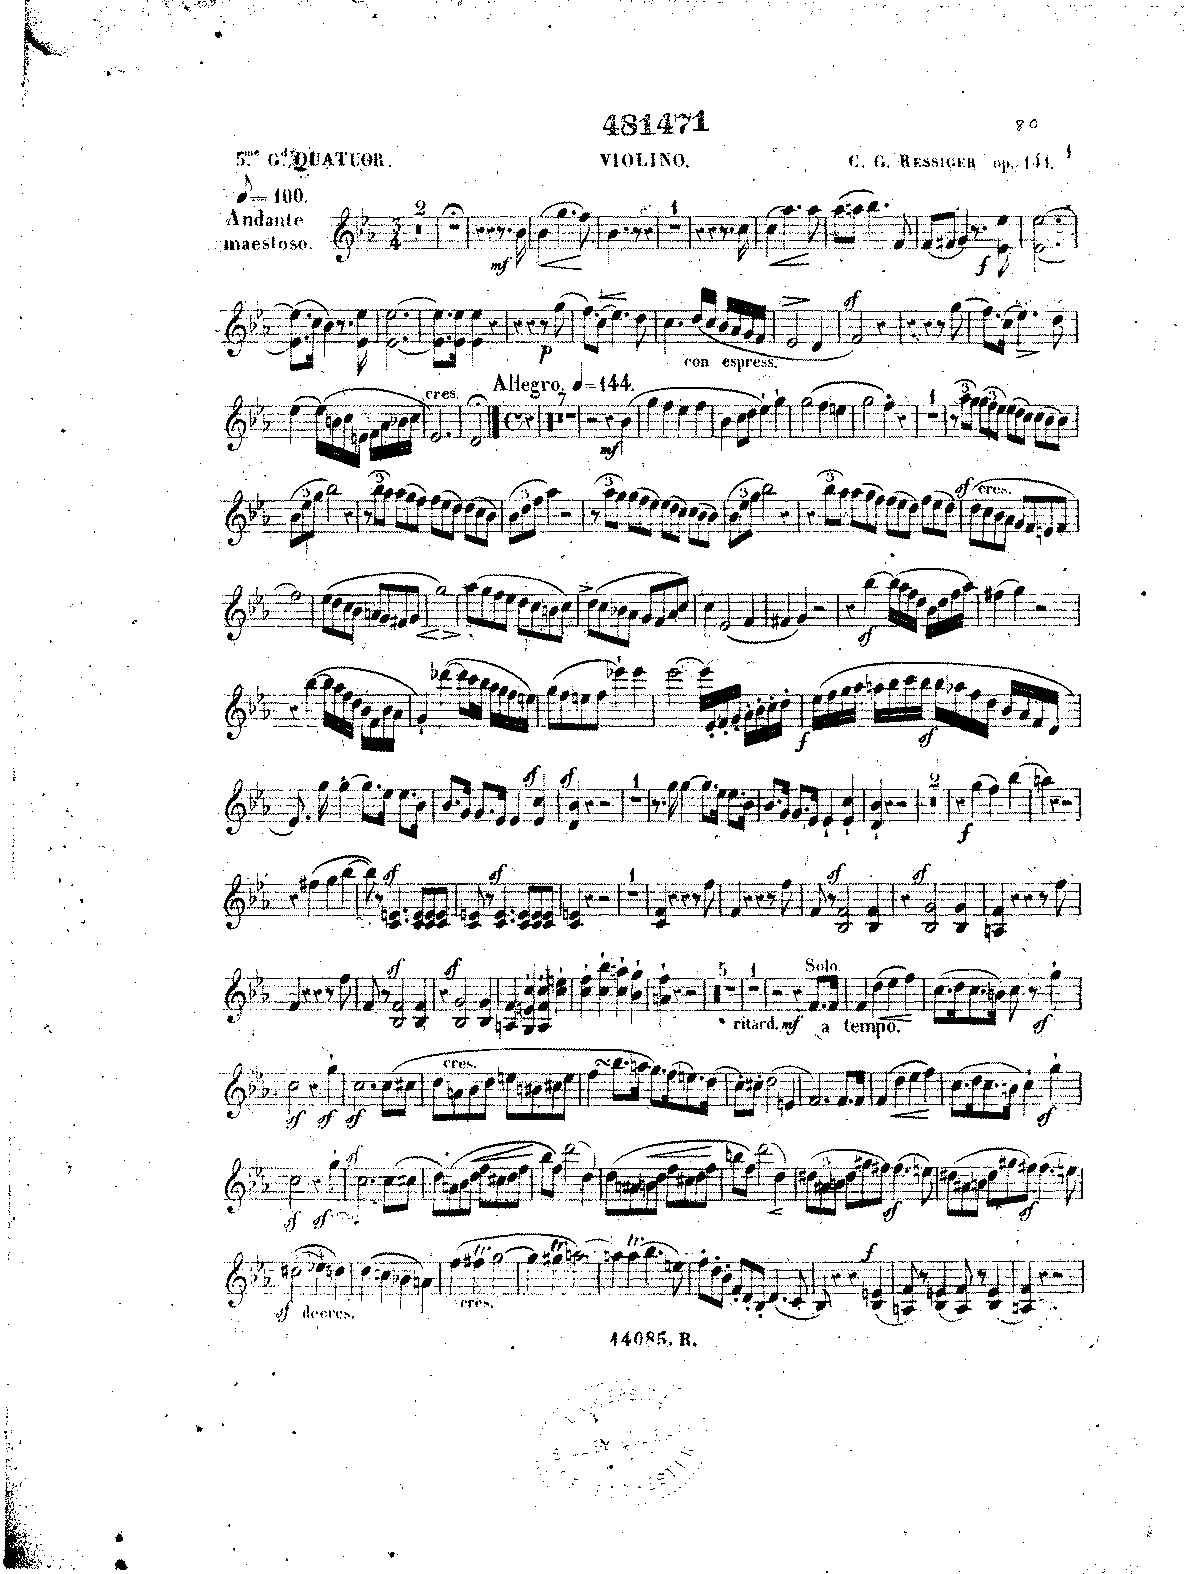 Reissiger Piano Quartet No.5 violin.pdf